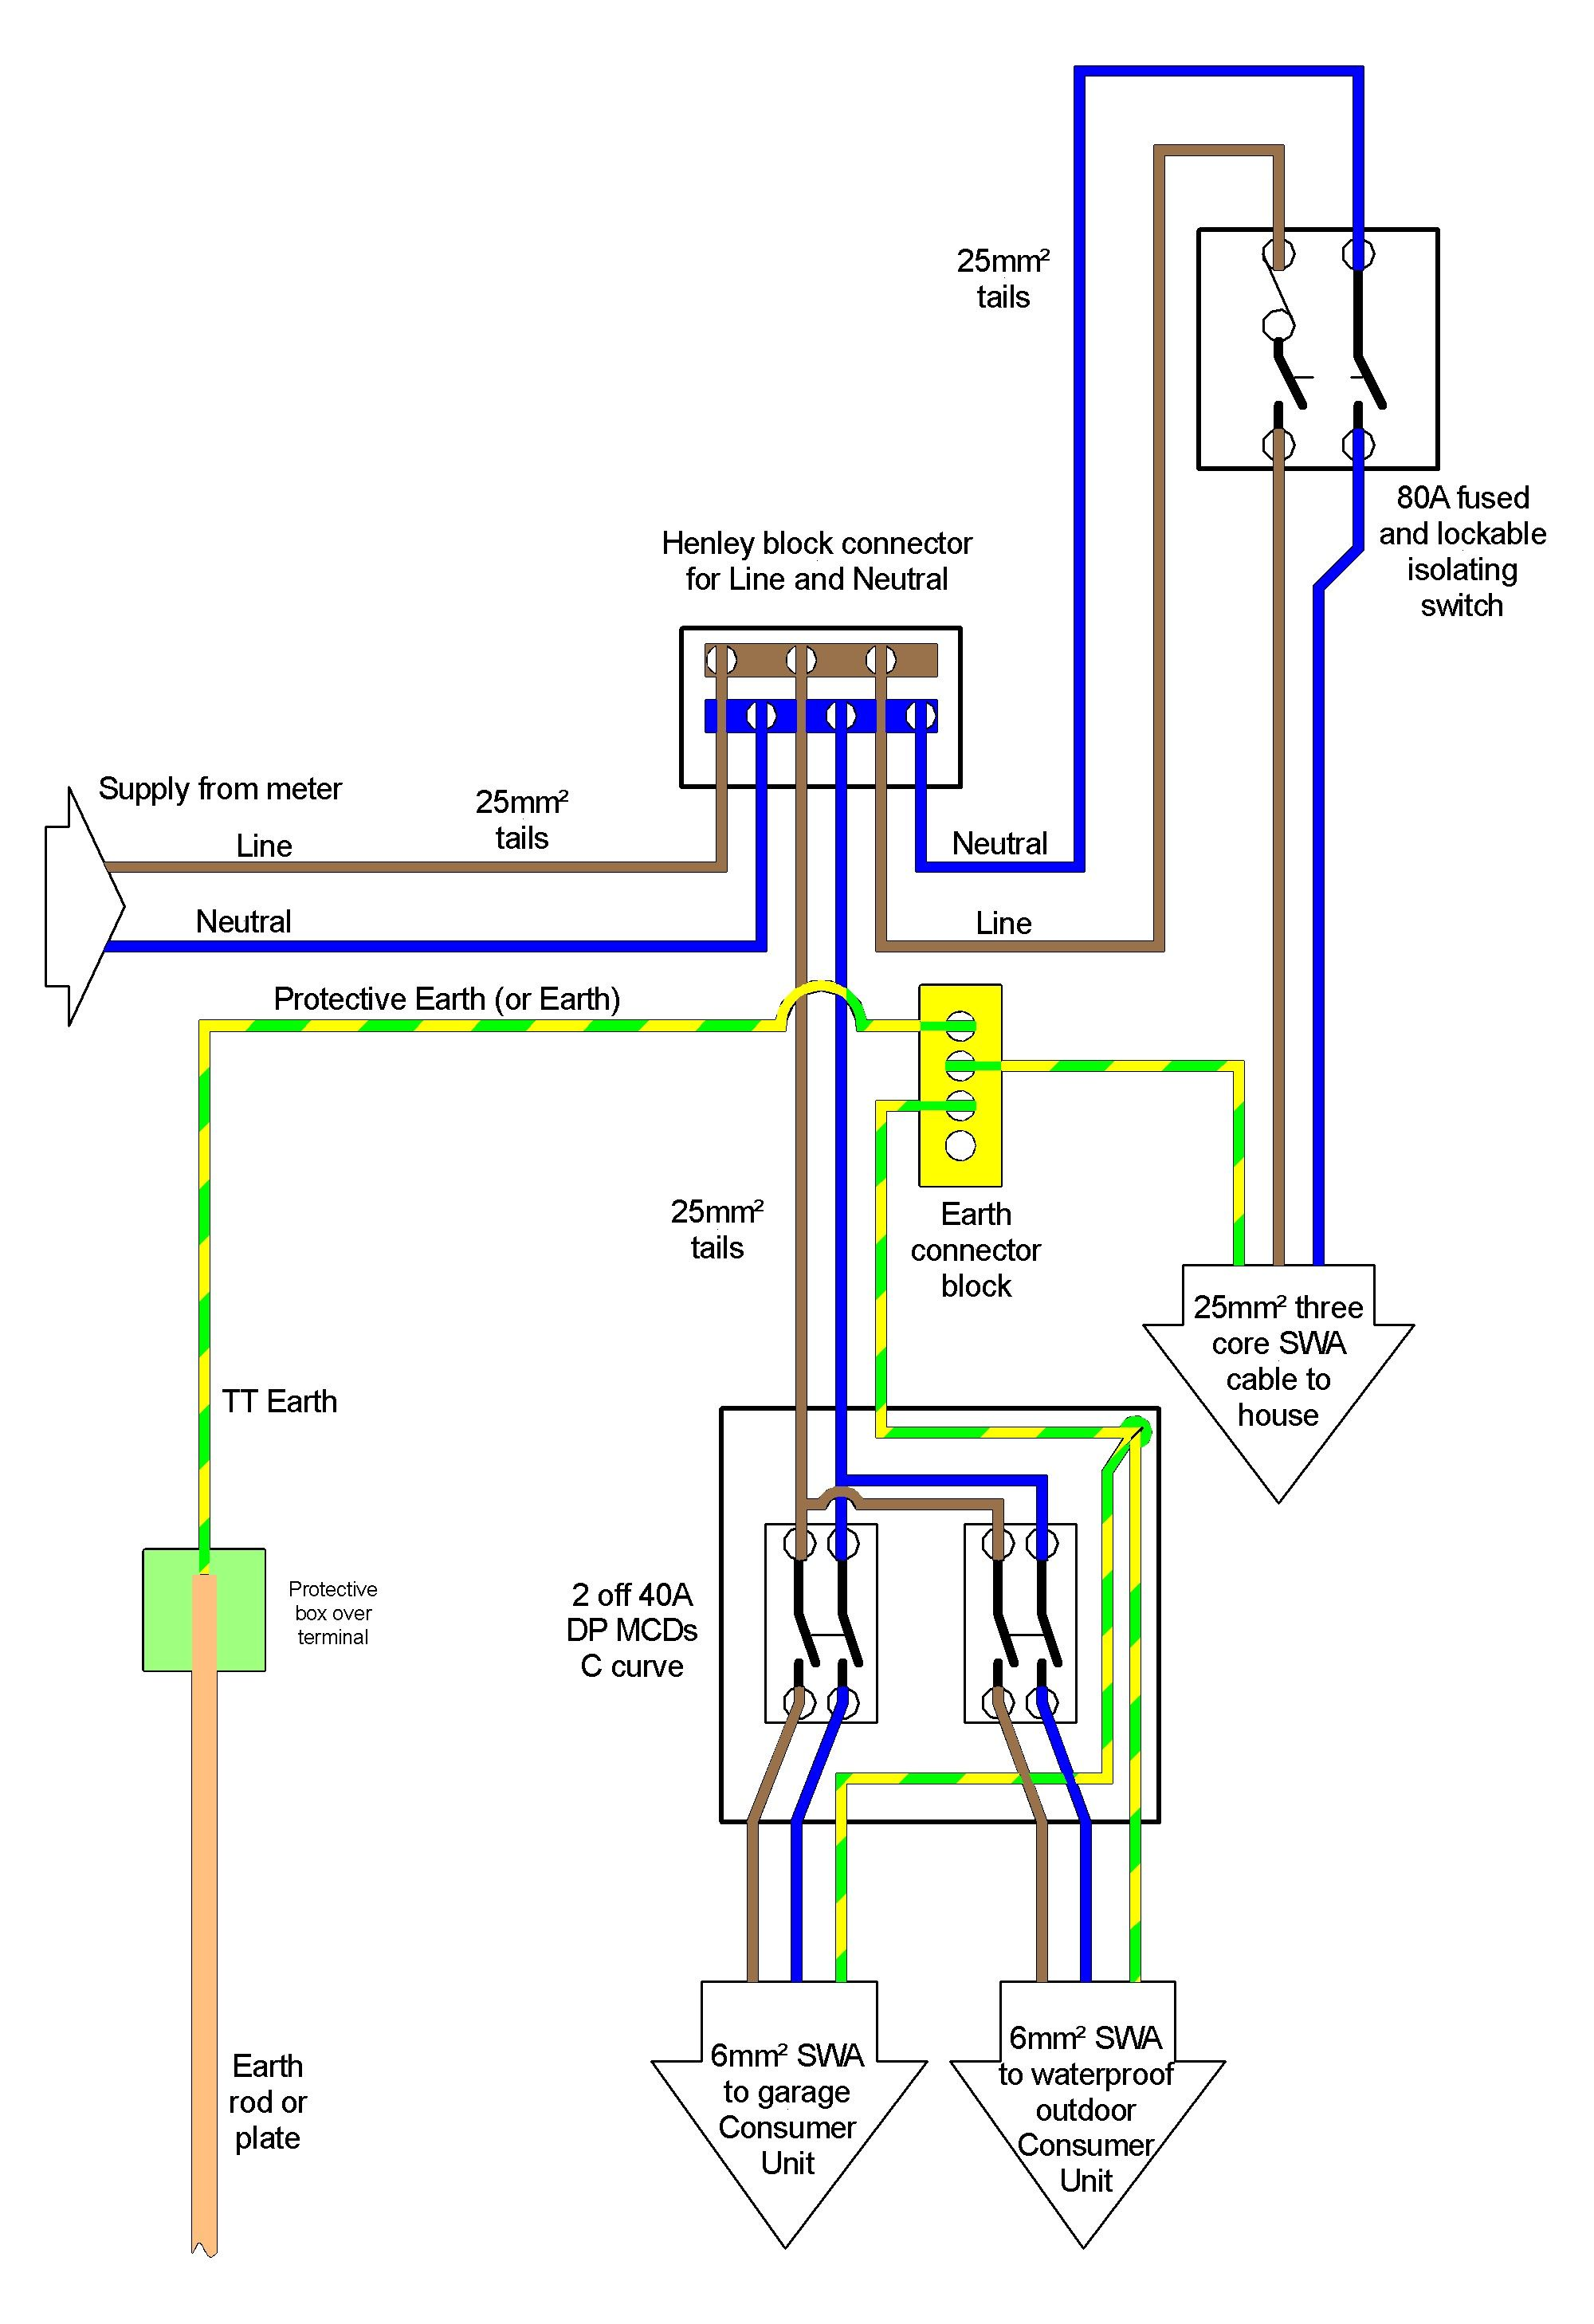 Electrical Consumer Unit Wiring Diagram Diagram Diagramtemplate Diagramsample Elektroniken Design